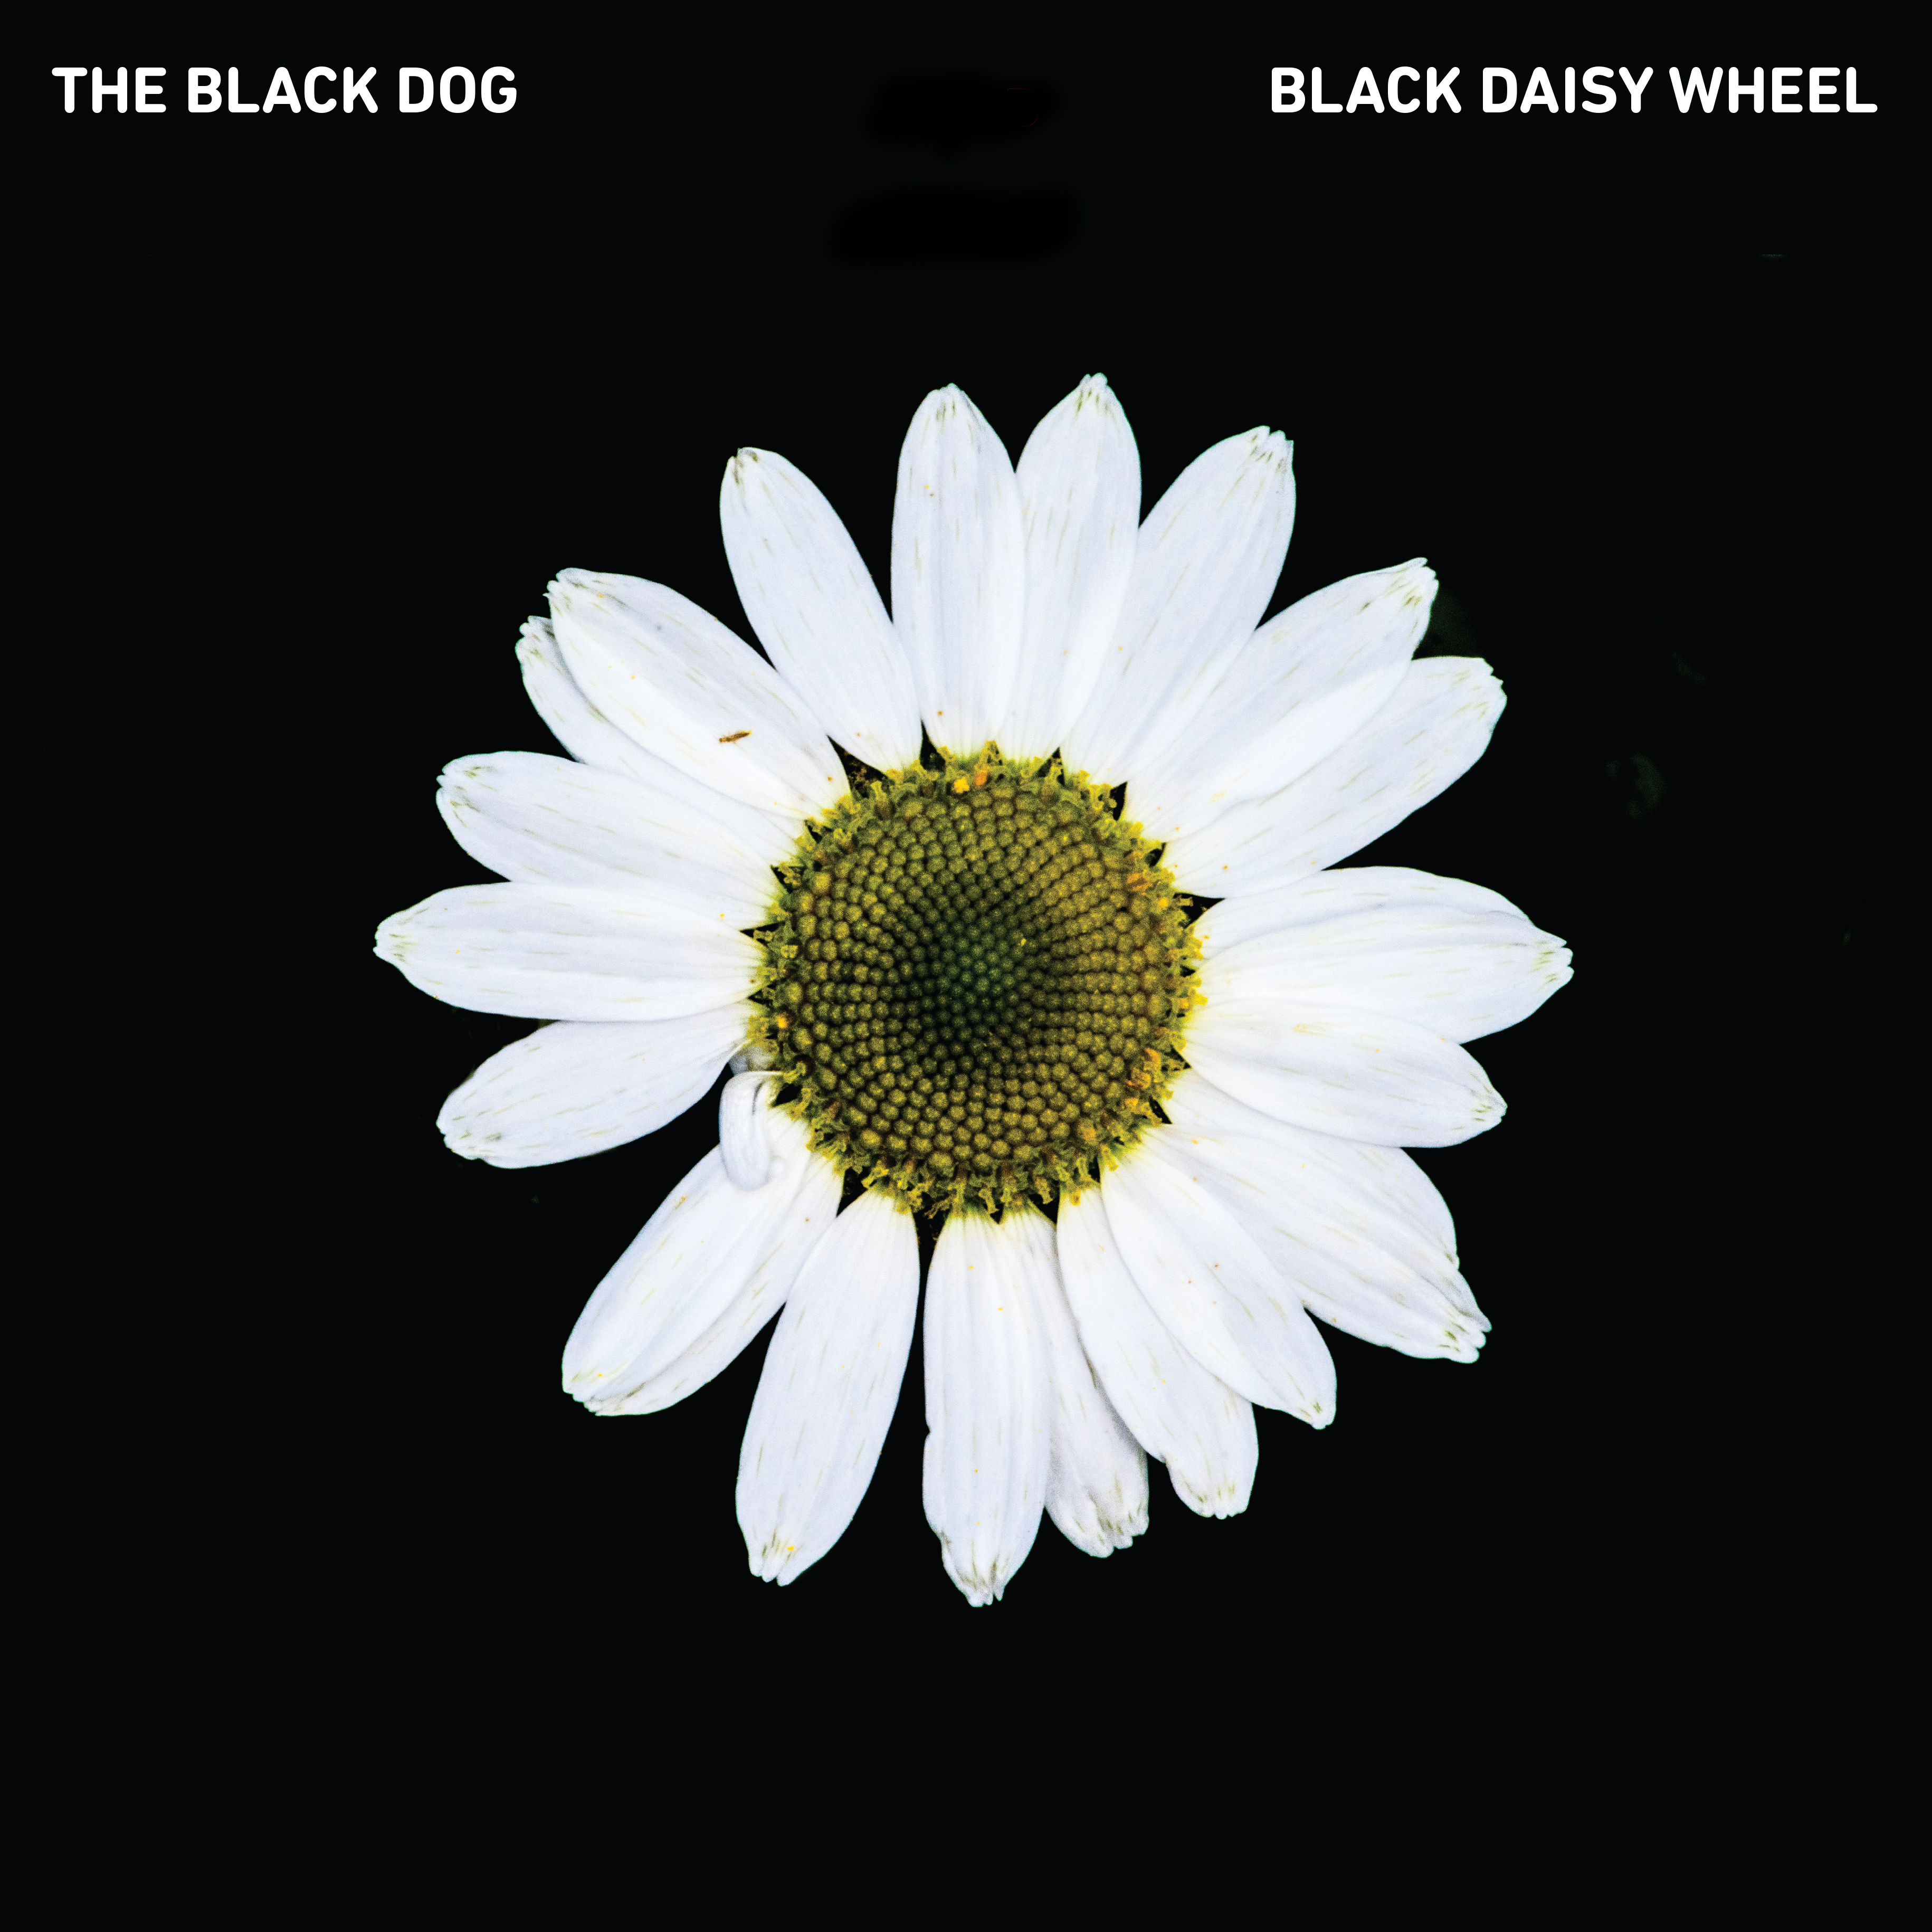 The Black Dog - Post-Truth / Black Daisy Wheel